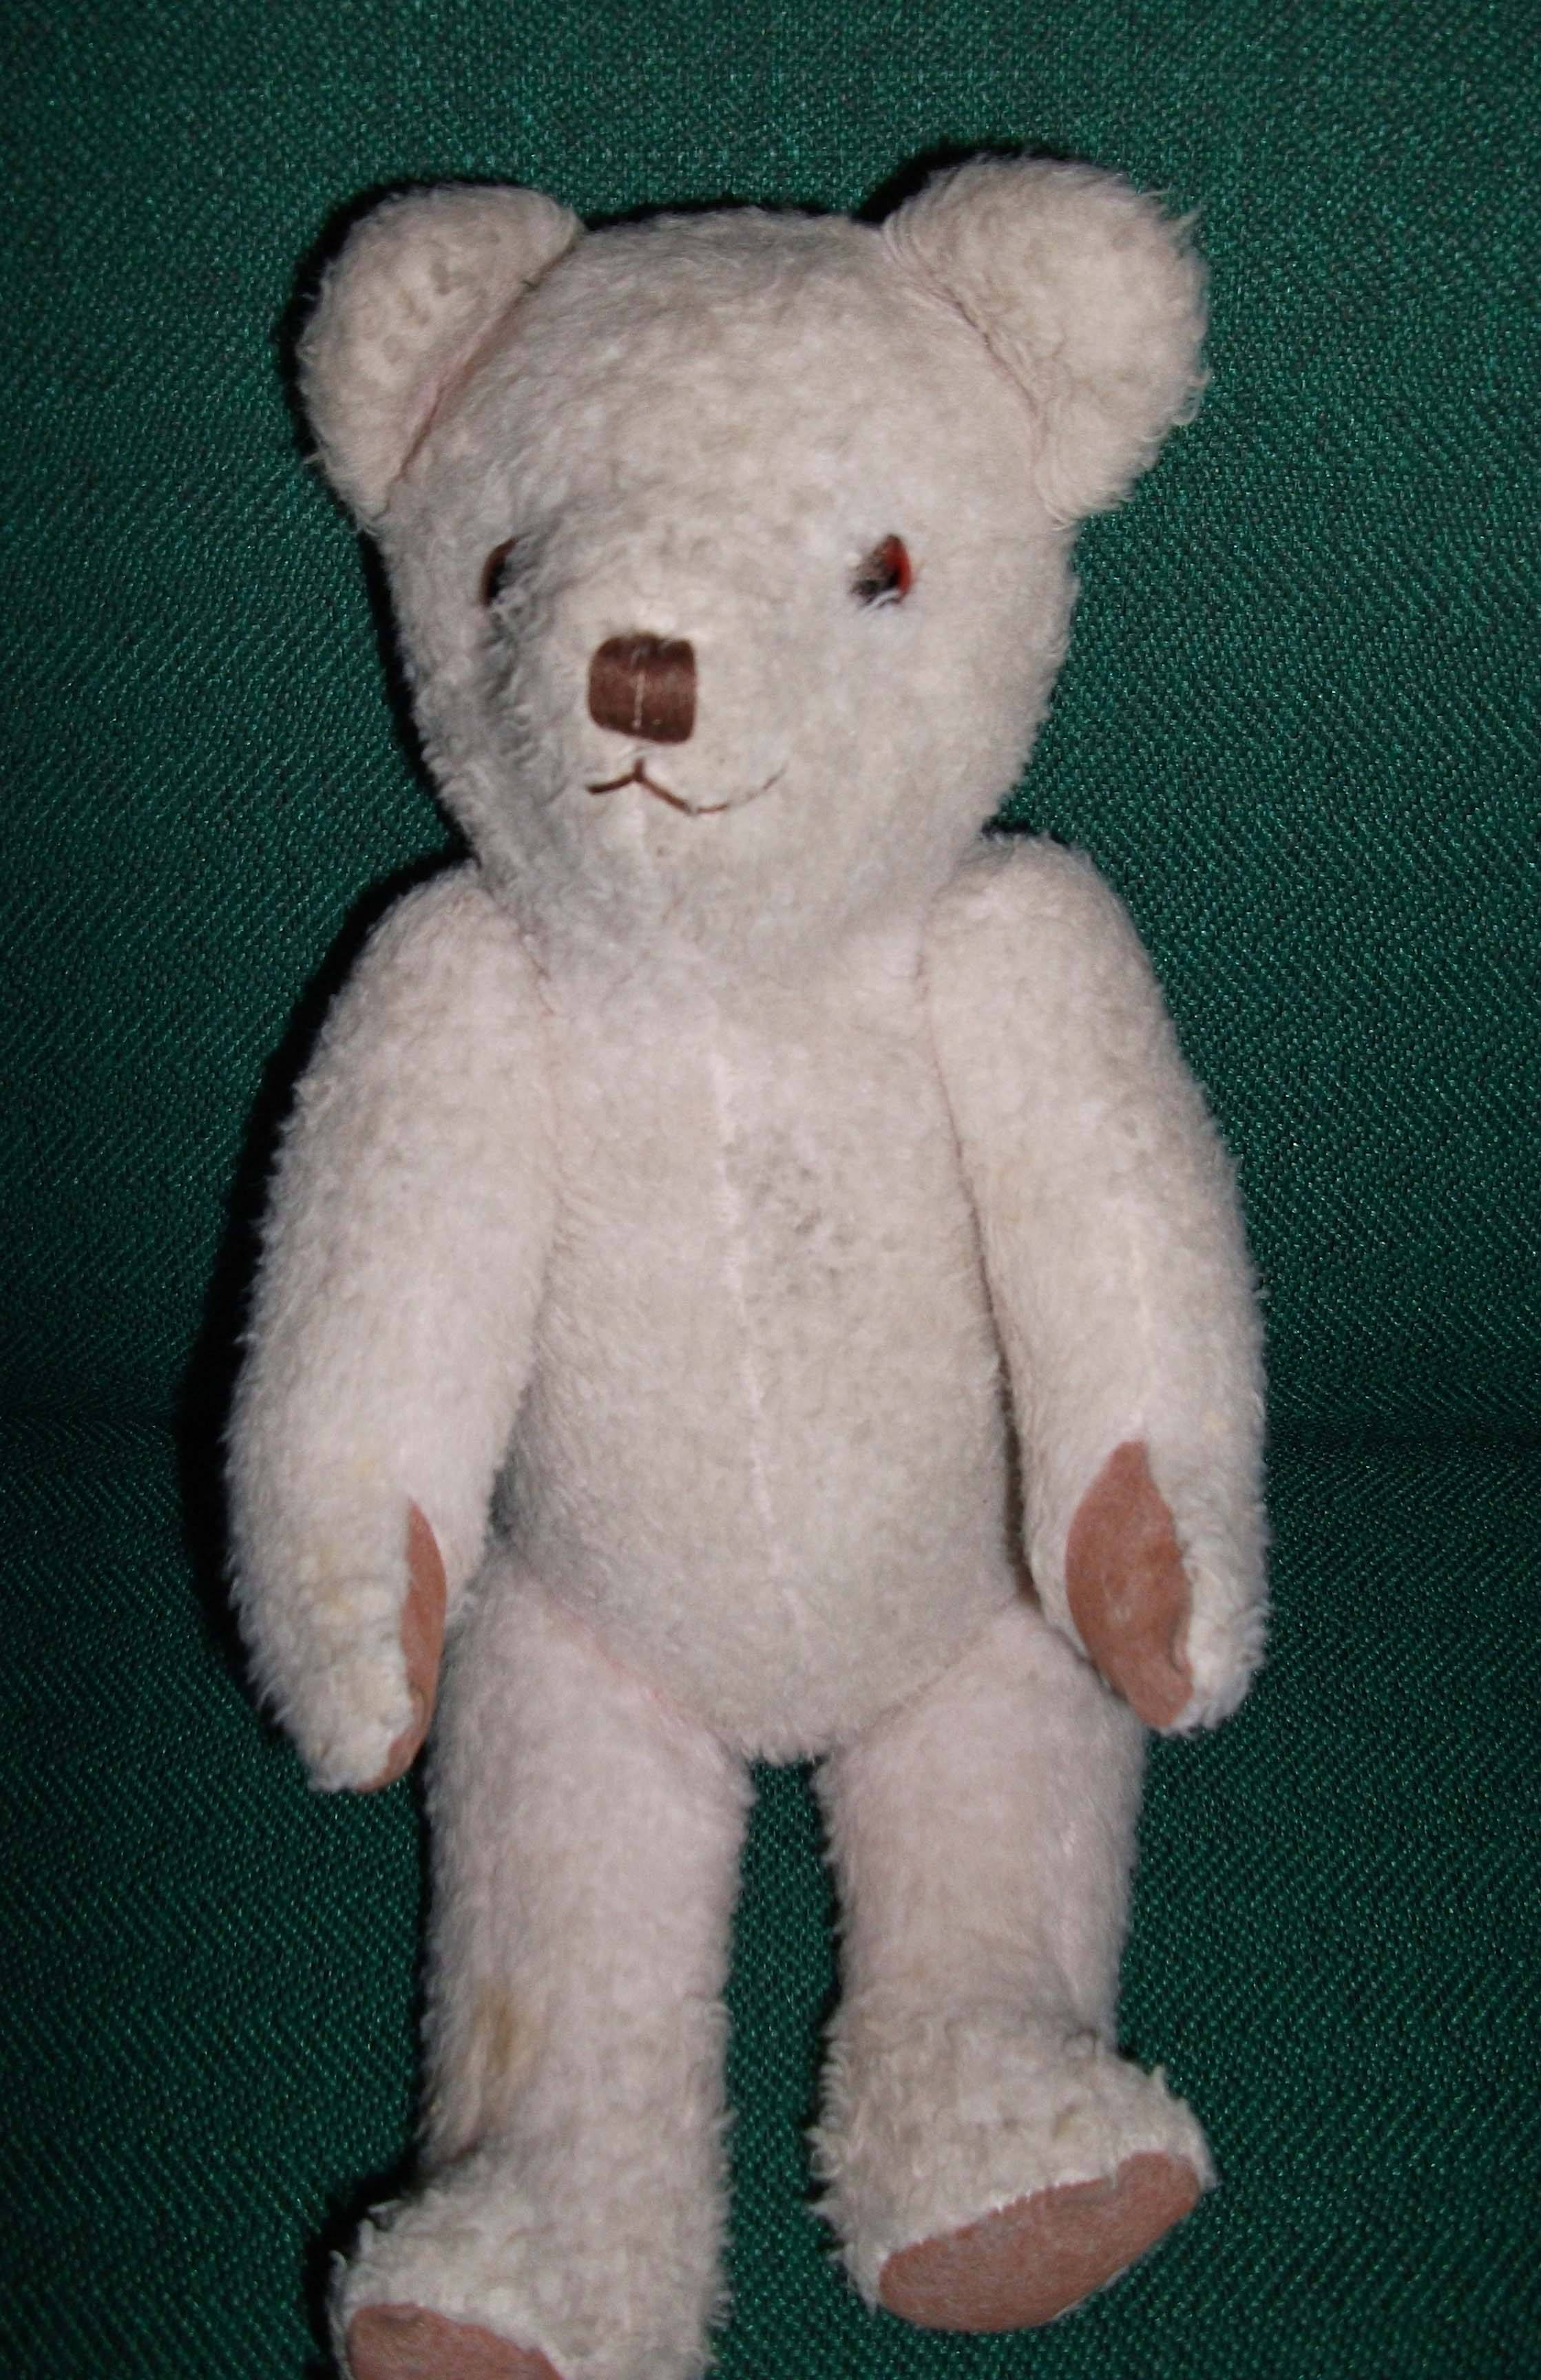 Australian Made Teddy Bears Joy Toys History Of Australian Teddy Bears Handmade